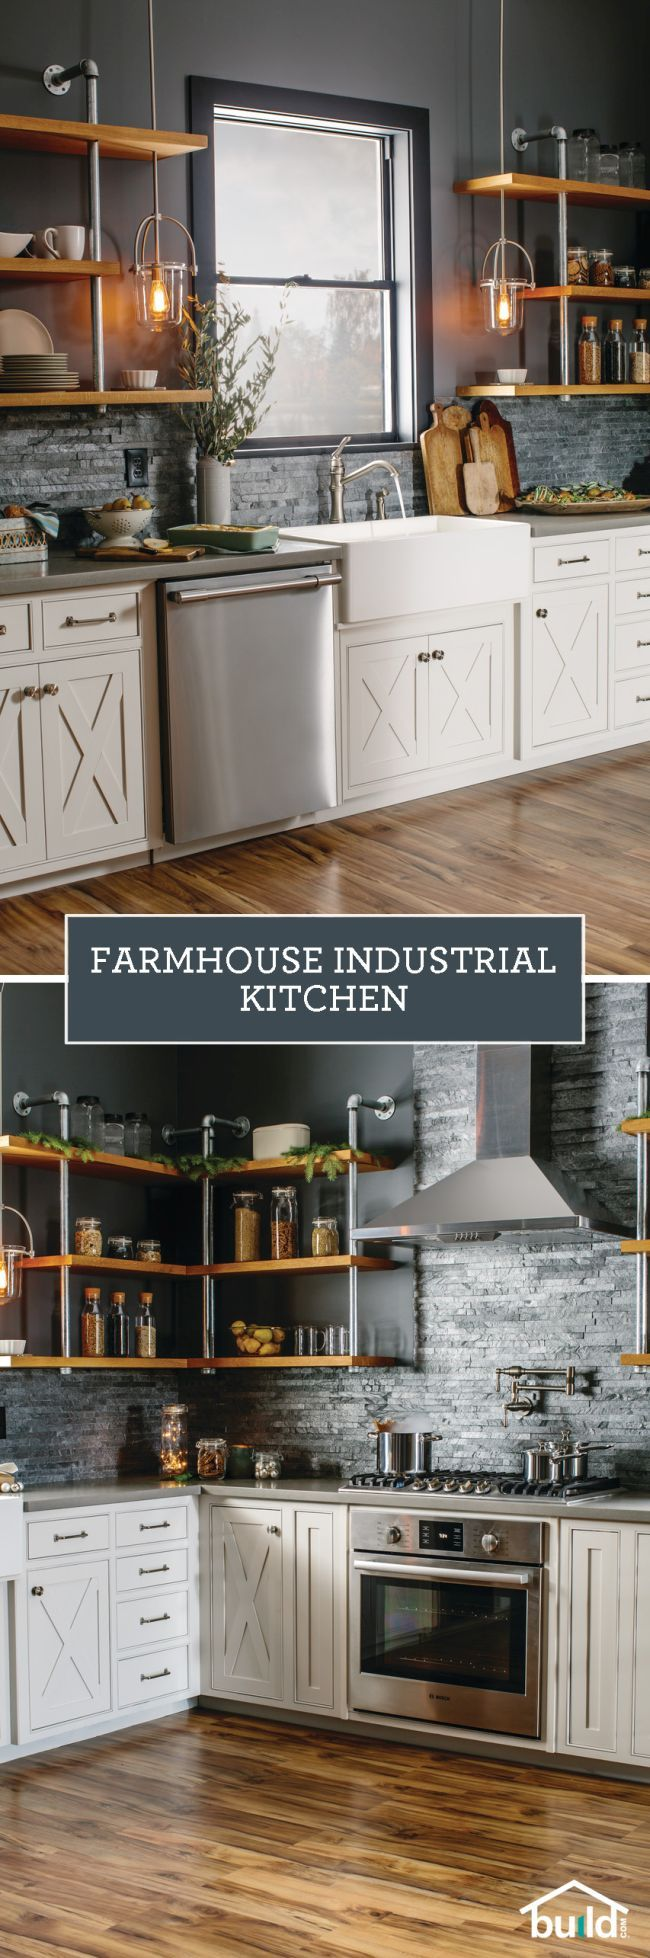 Pin by brittany bissell on homeward bound pinterest industrial